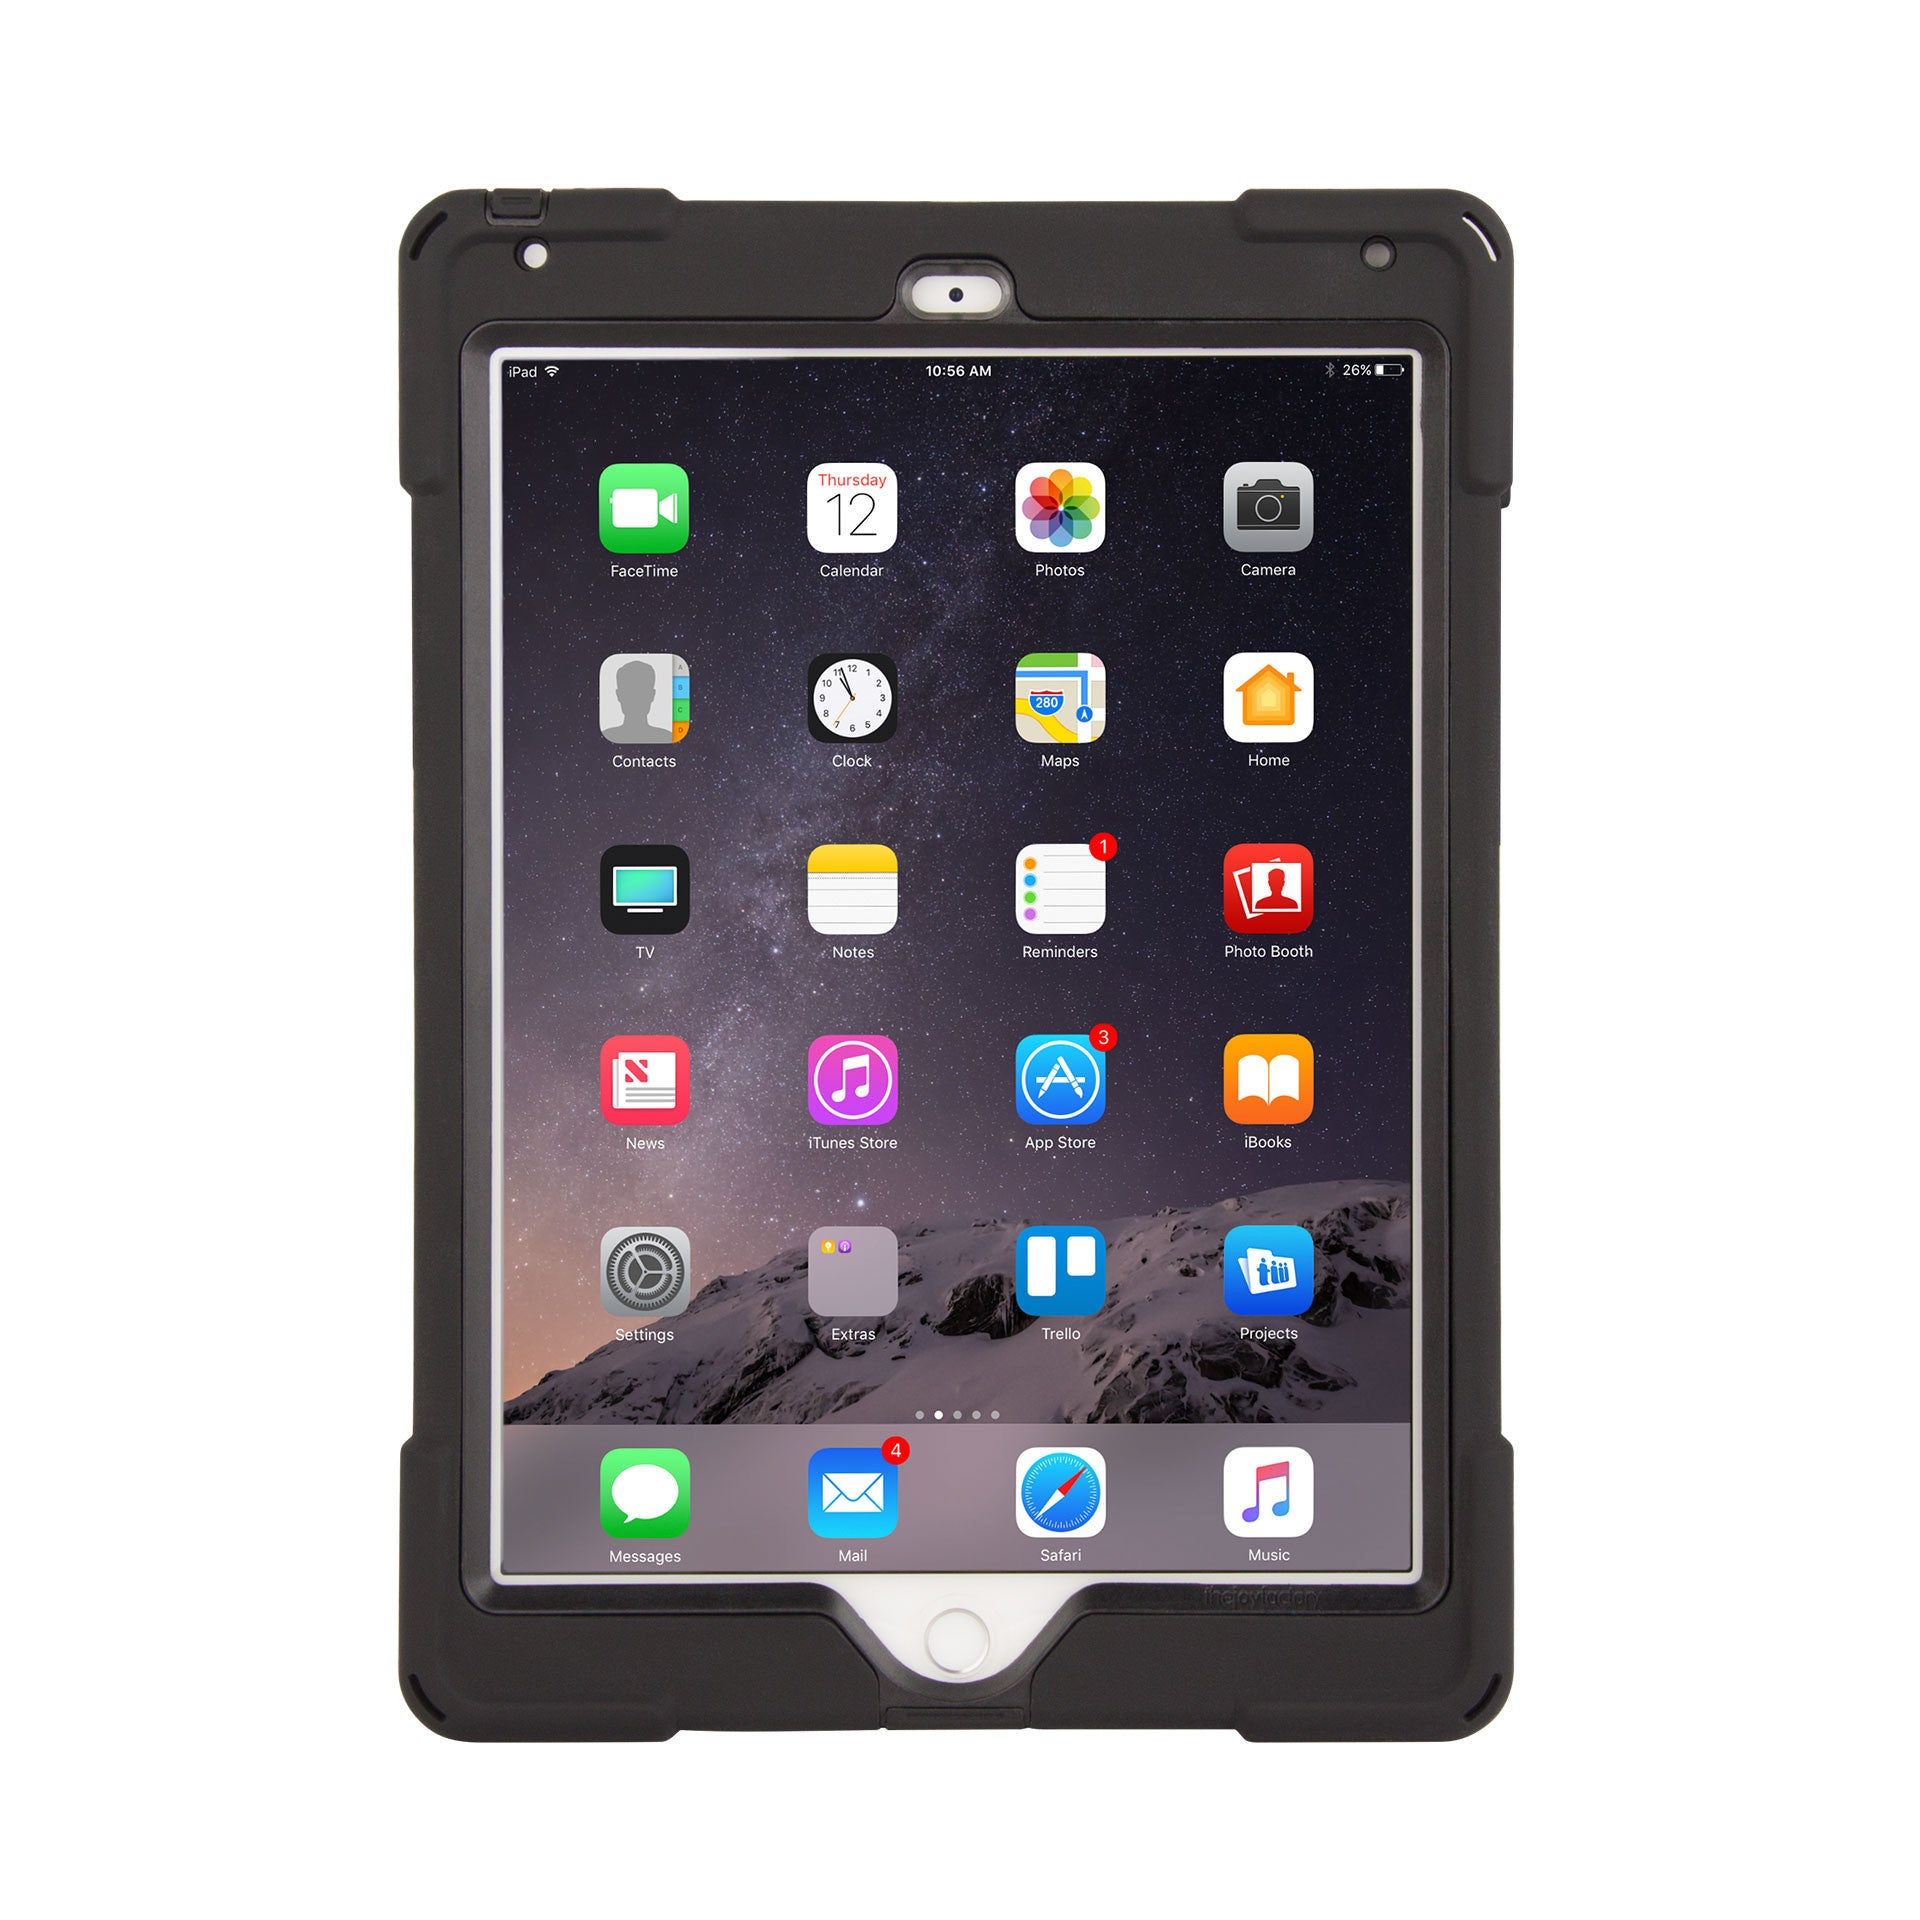 axtion bold water resistant ipad air 2 rugged case | the joy factory